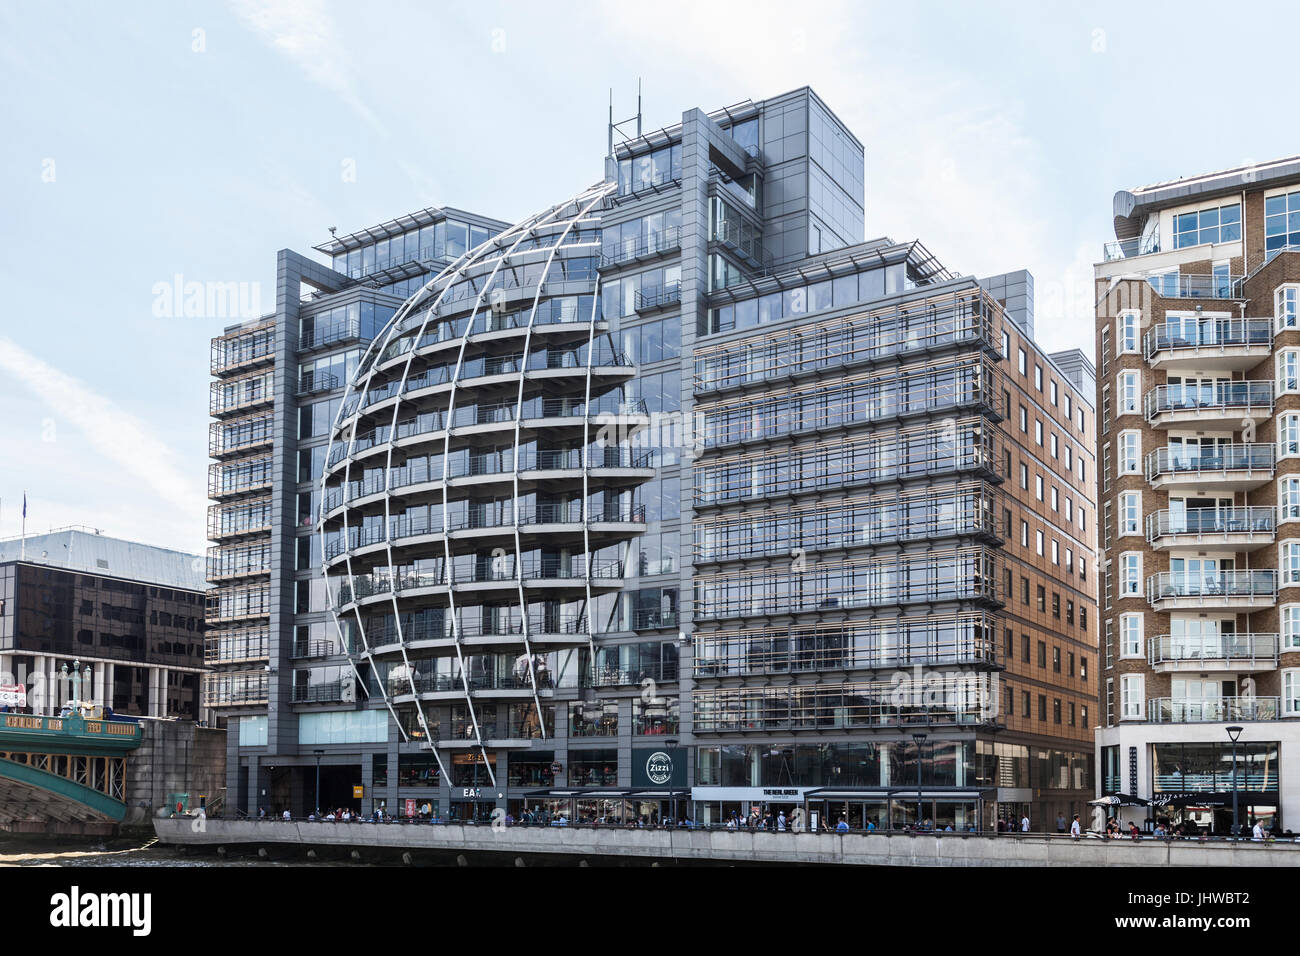 Riverside House, a distinctive office block, with Zizzi, Eat and The Real Greek restaurants on the ground floor. Stock Photo